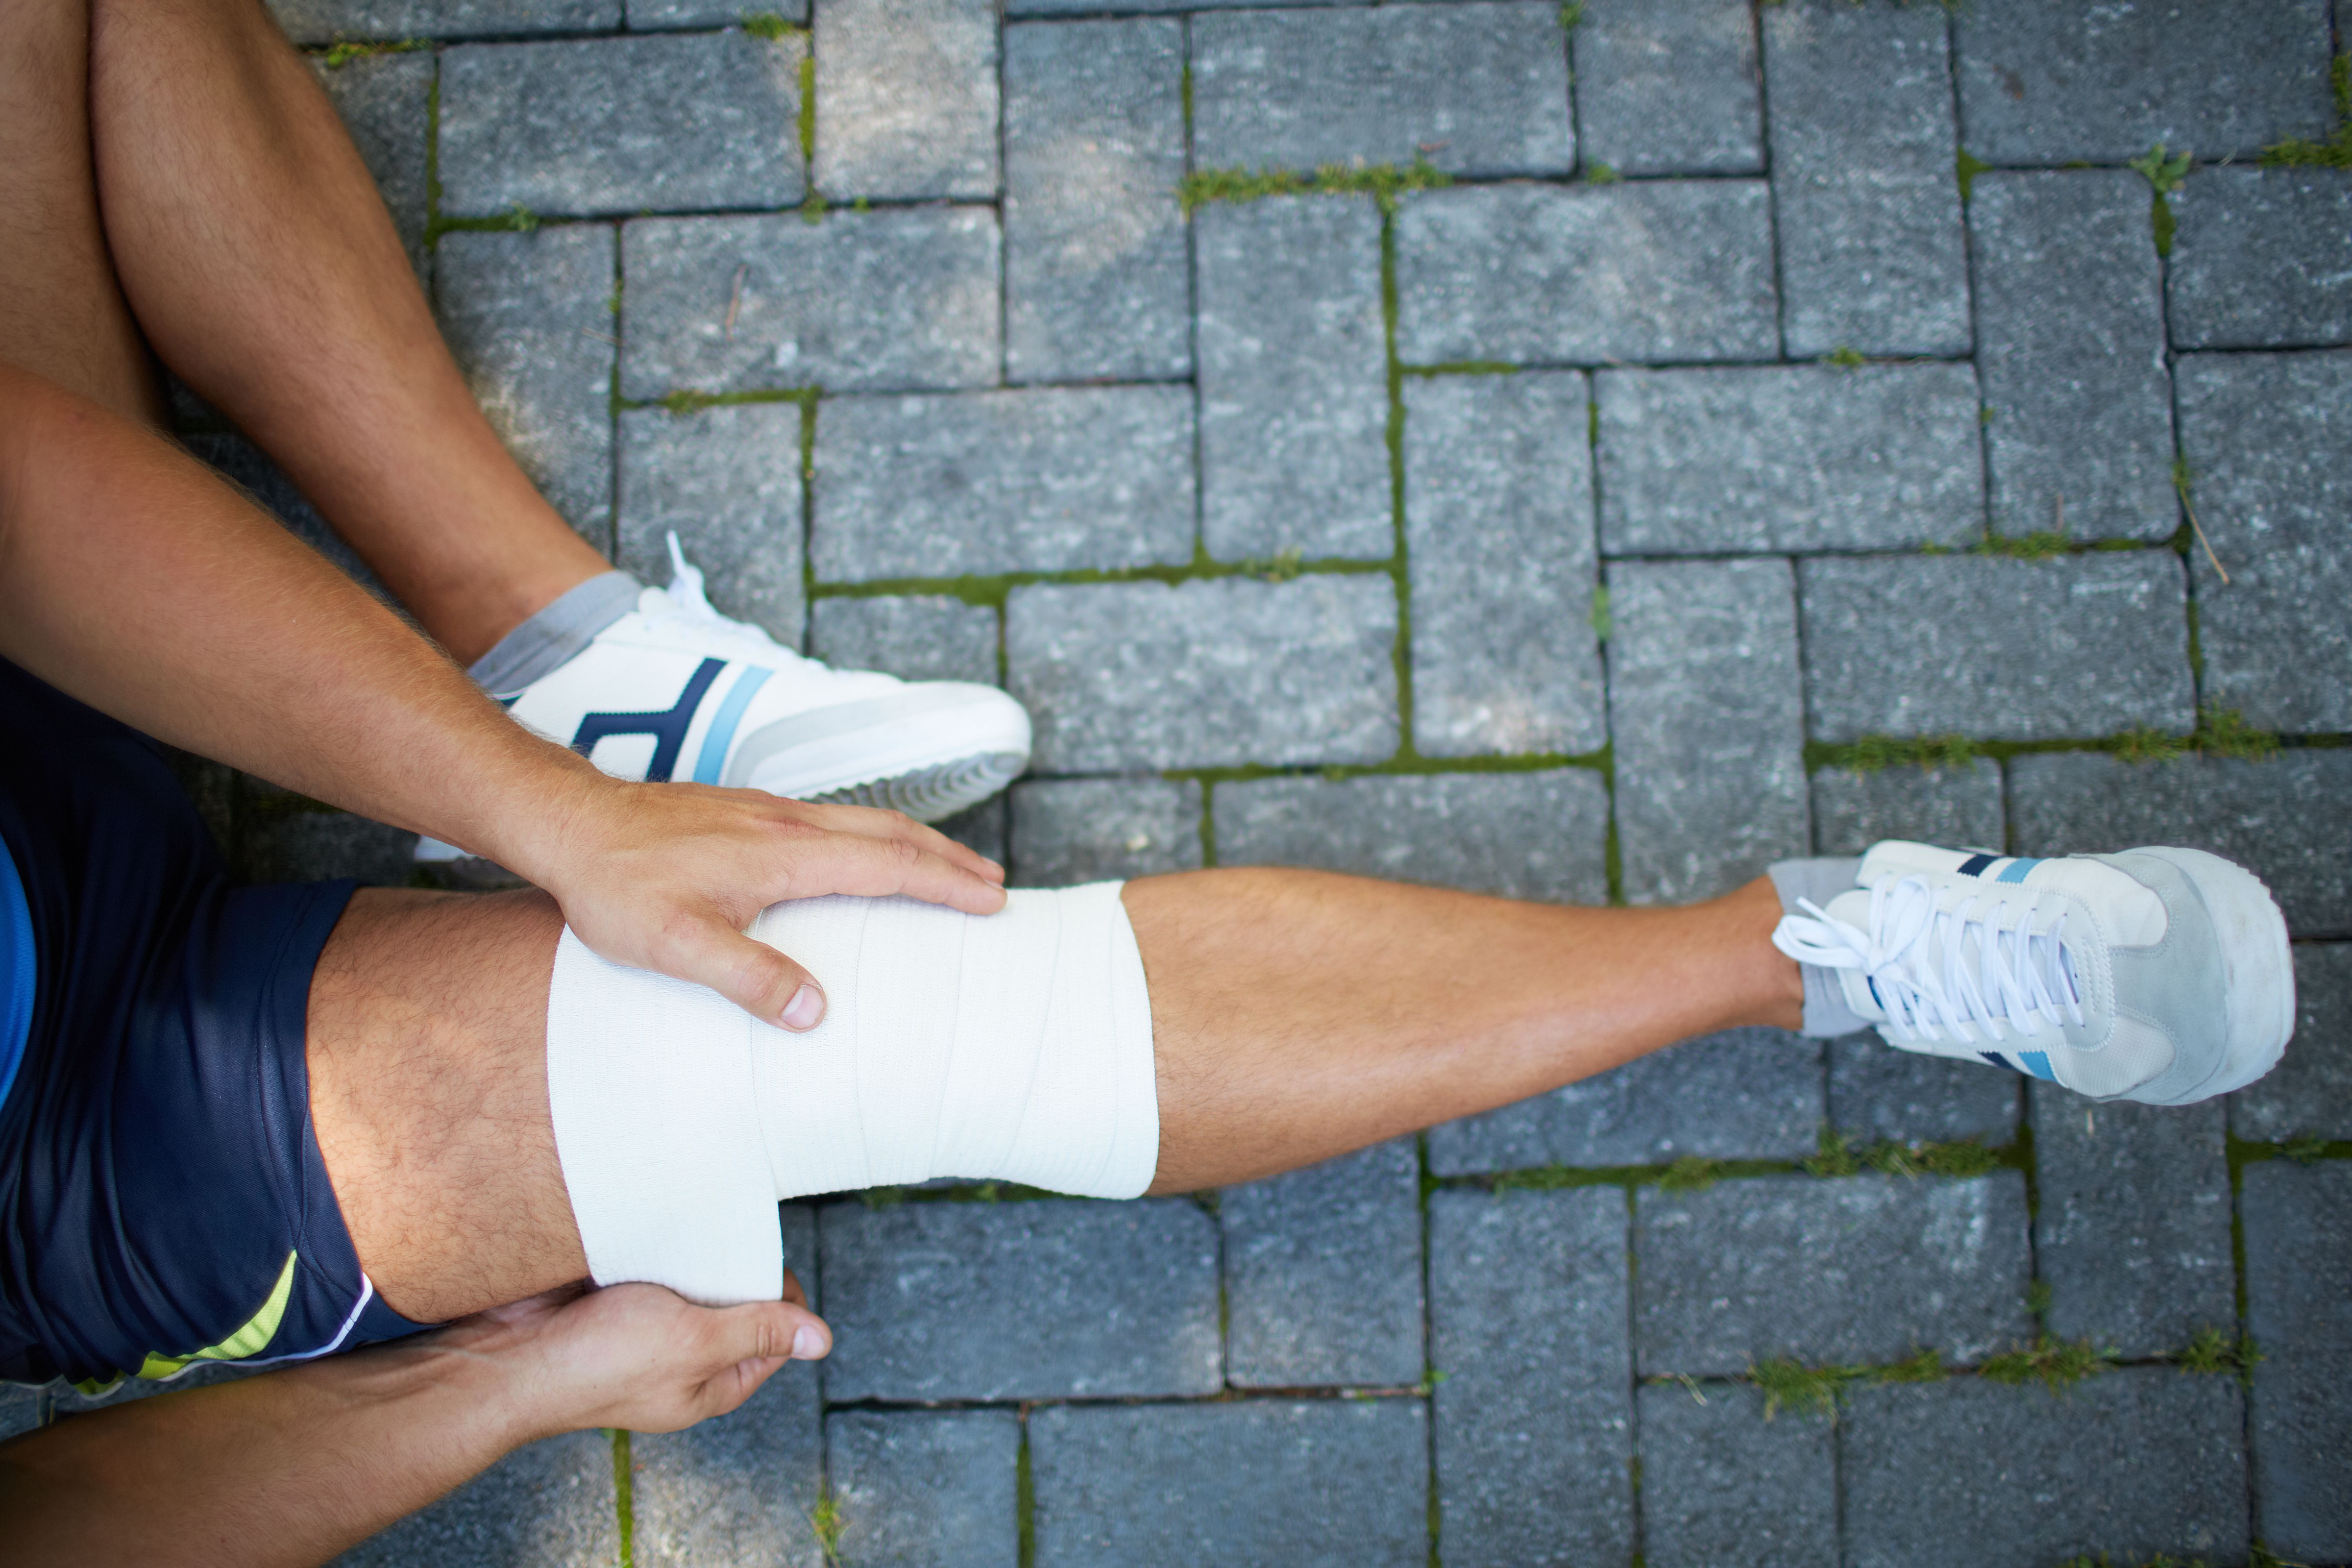 Sleep And Injury! Are You Putting Yourself At Risk?